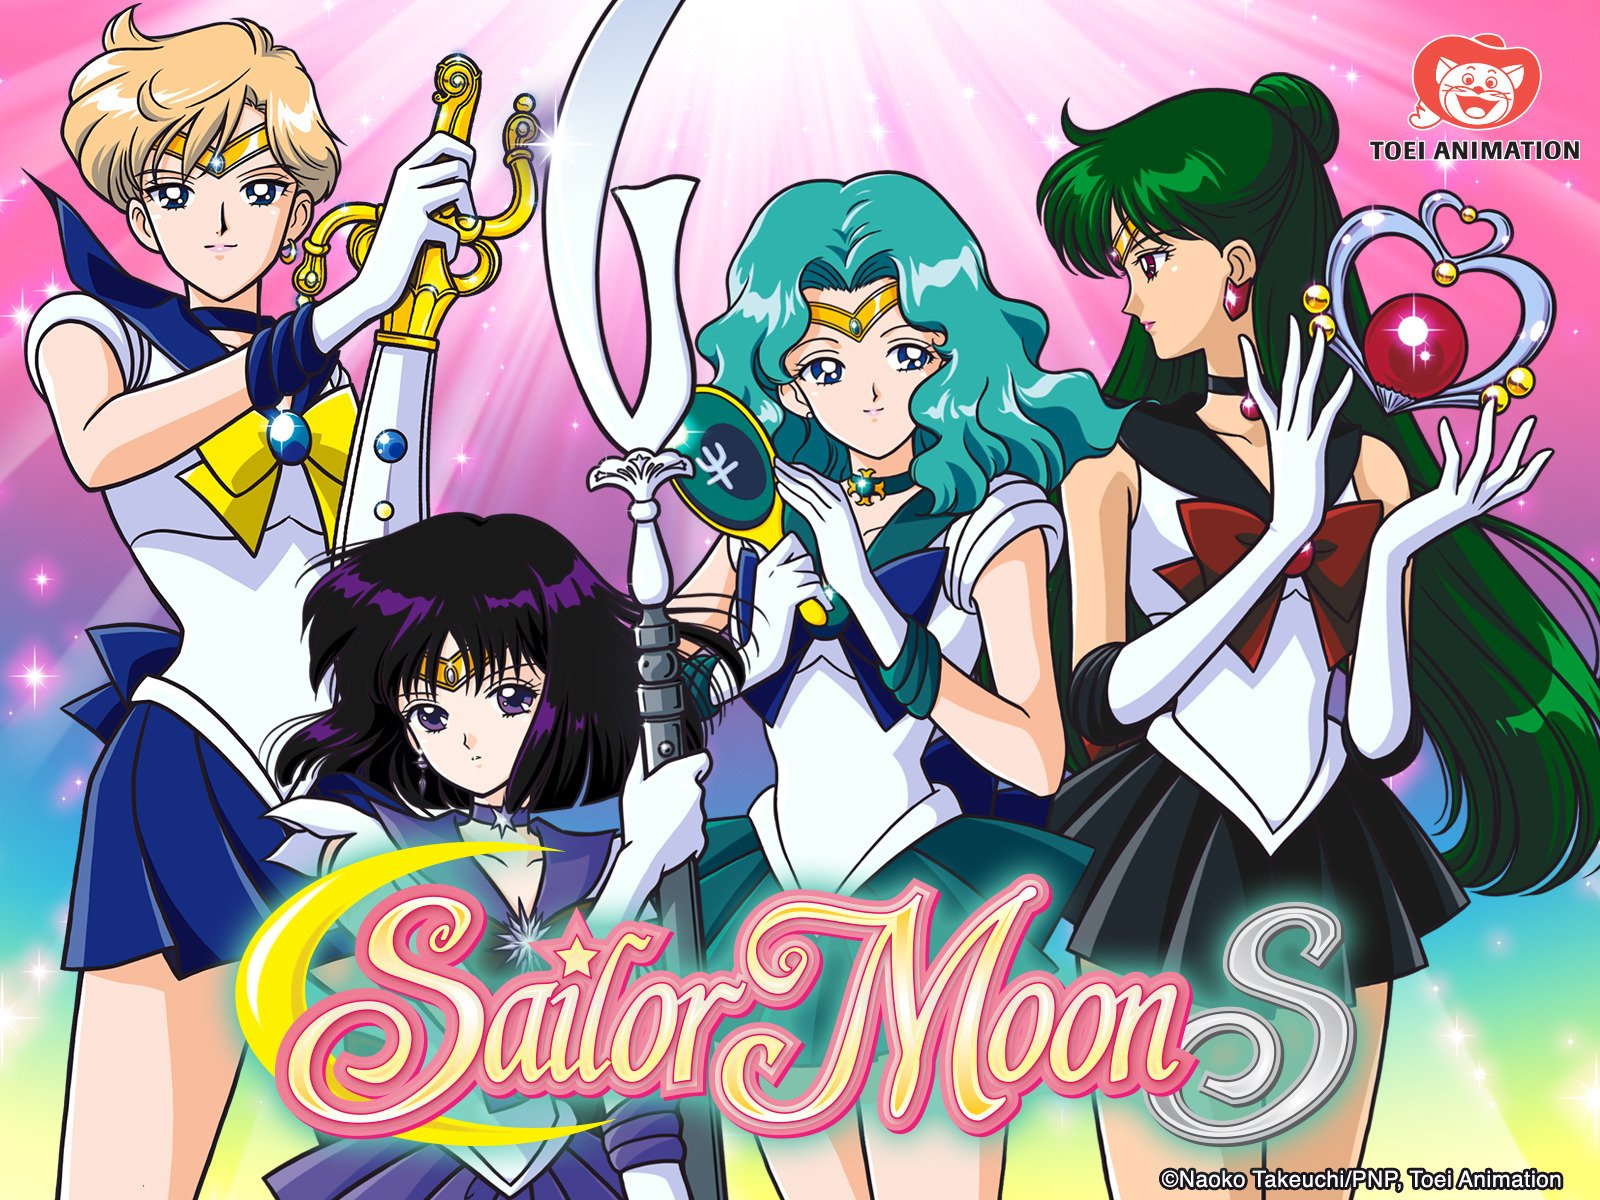 Sailor Moon S – Saison 3